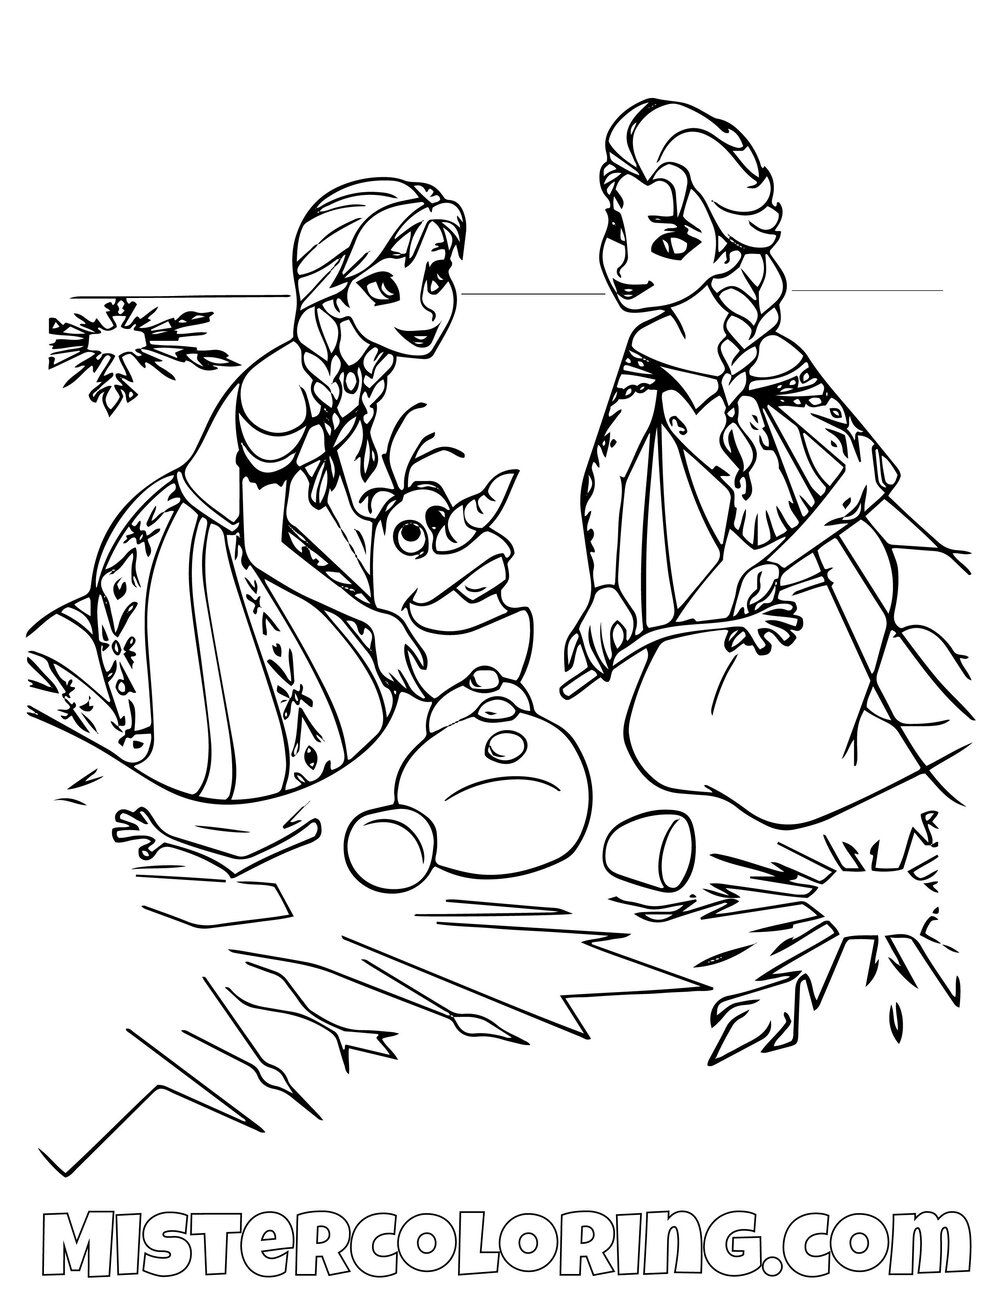 Queen Elsa And Princess Anna Fixing Olaf Frozen 2 Coloring Pages